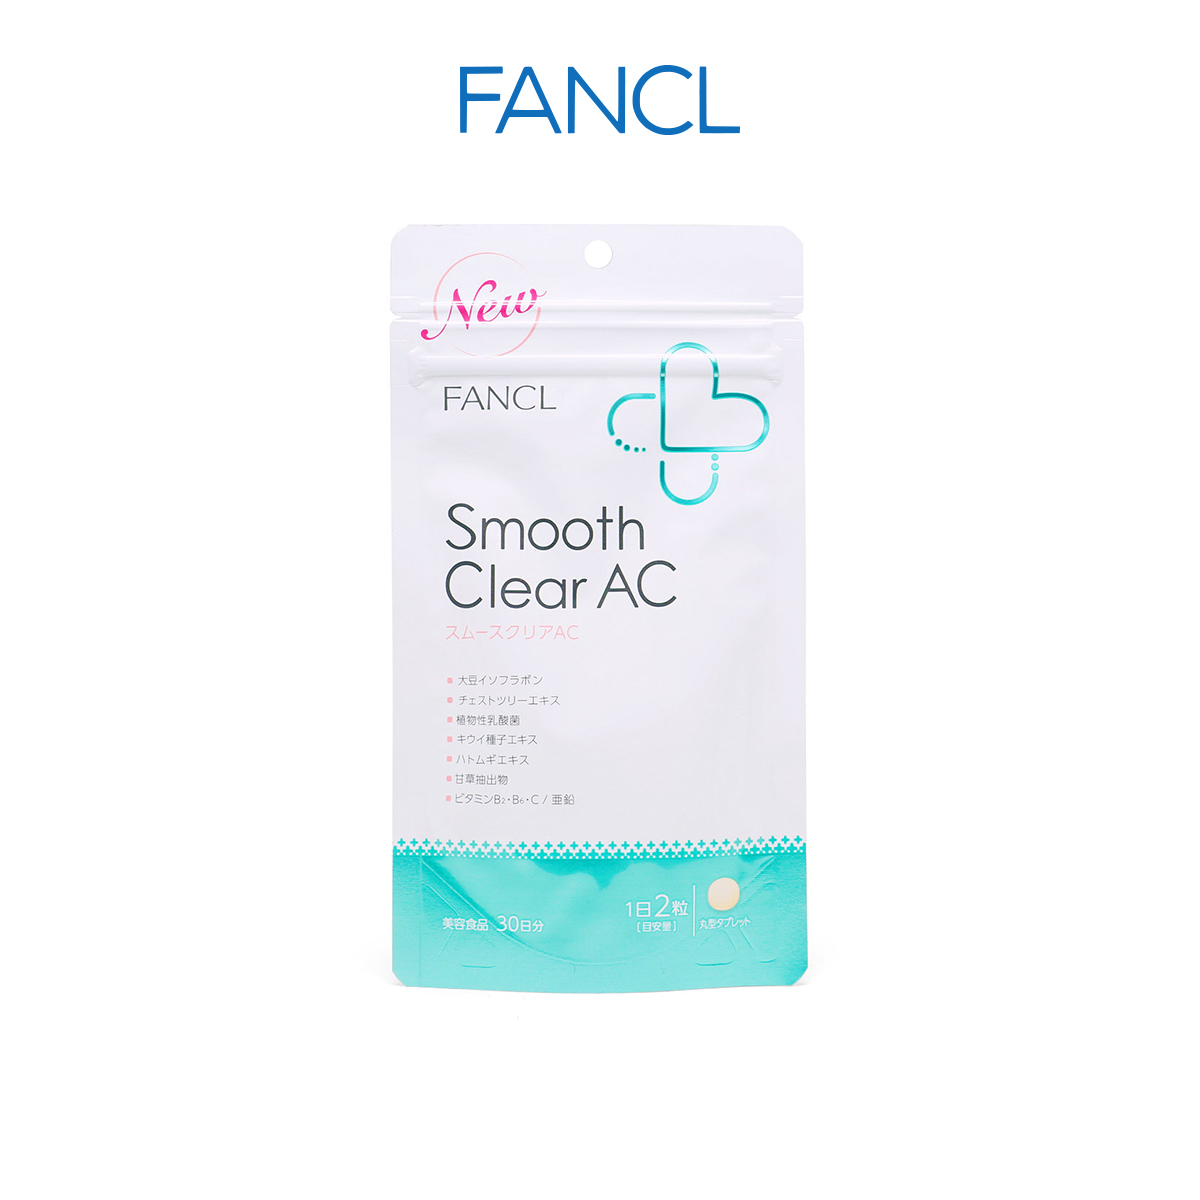 Buy FANCL Smooth Clear AC Acne Care 60 tablets (30 Days) [Ship from SG / 100% Authentic] Singapore